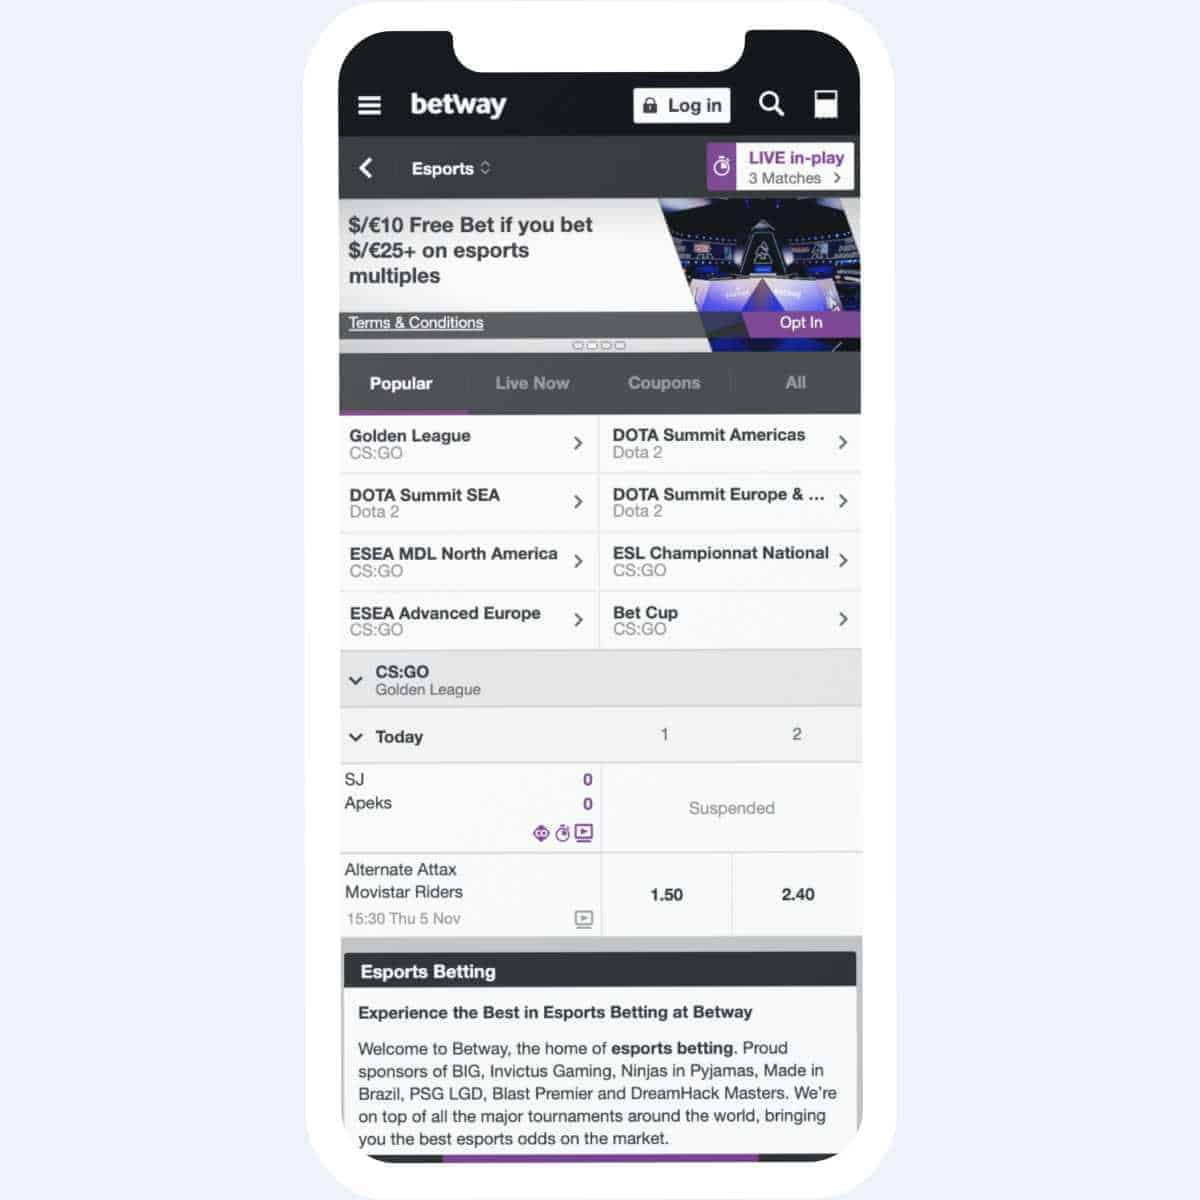 betway events mobile